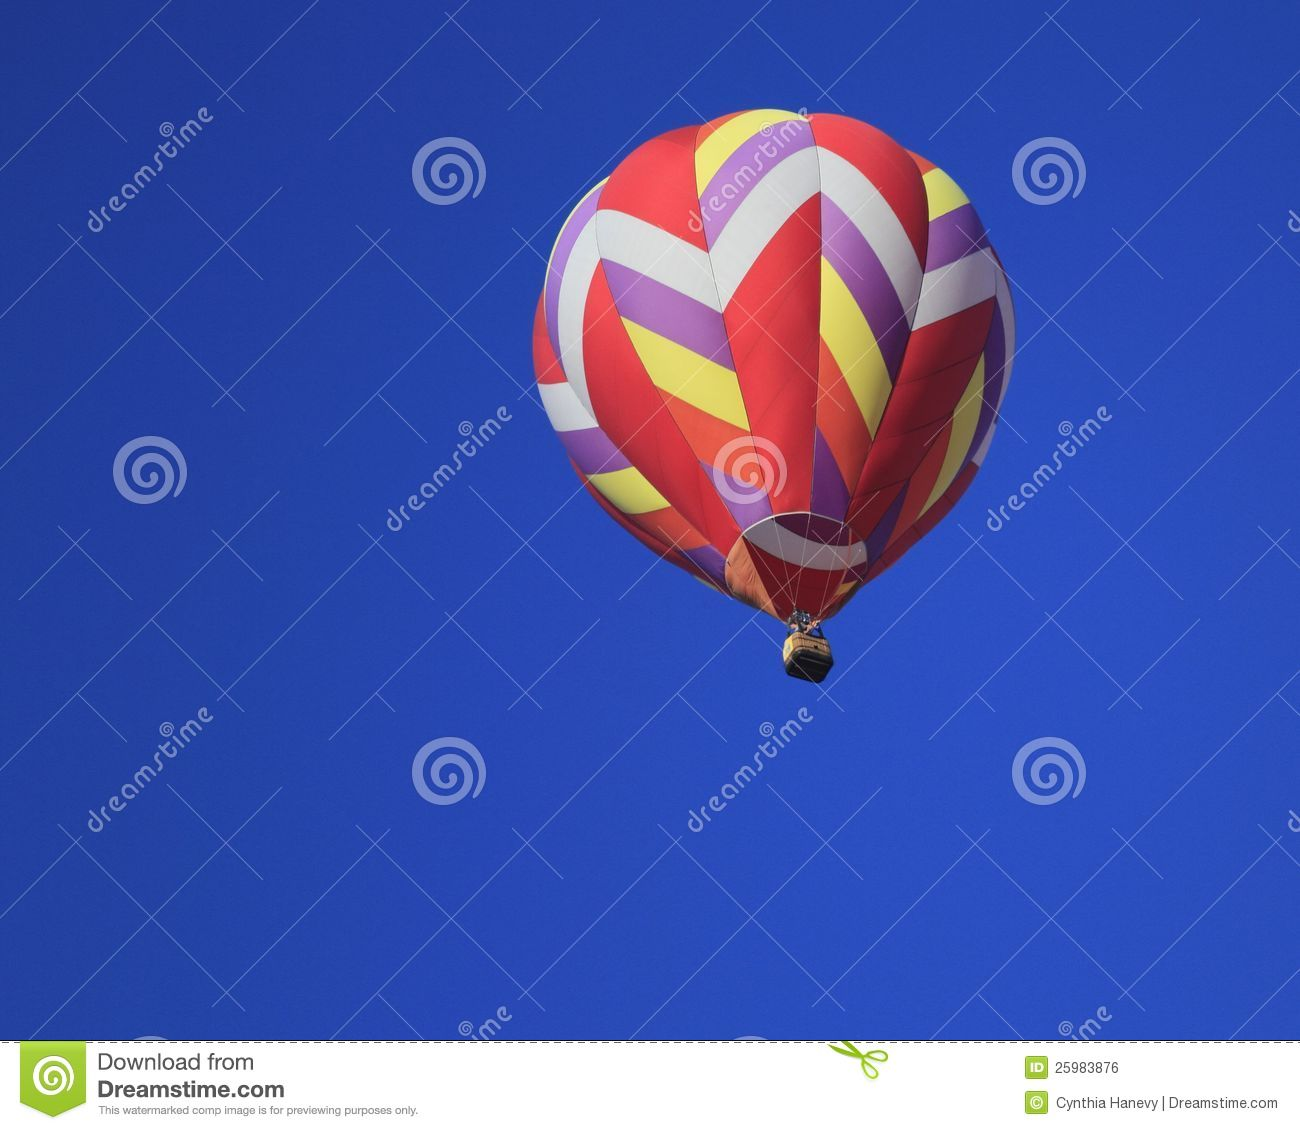 Hot Air Balloon Aloft in Blue Sky-Achievement